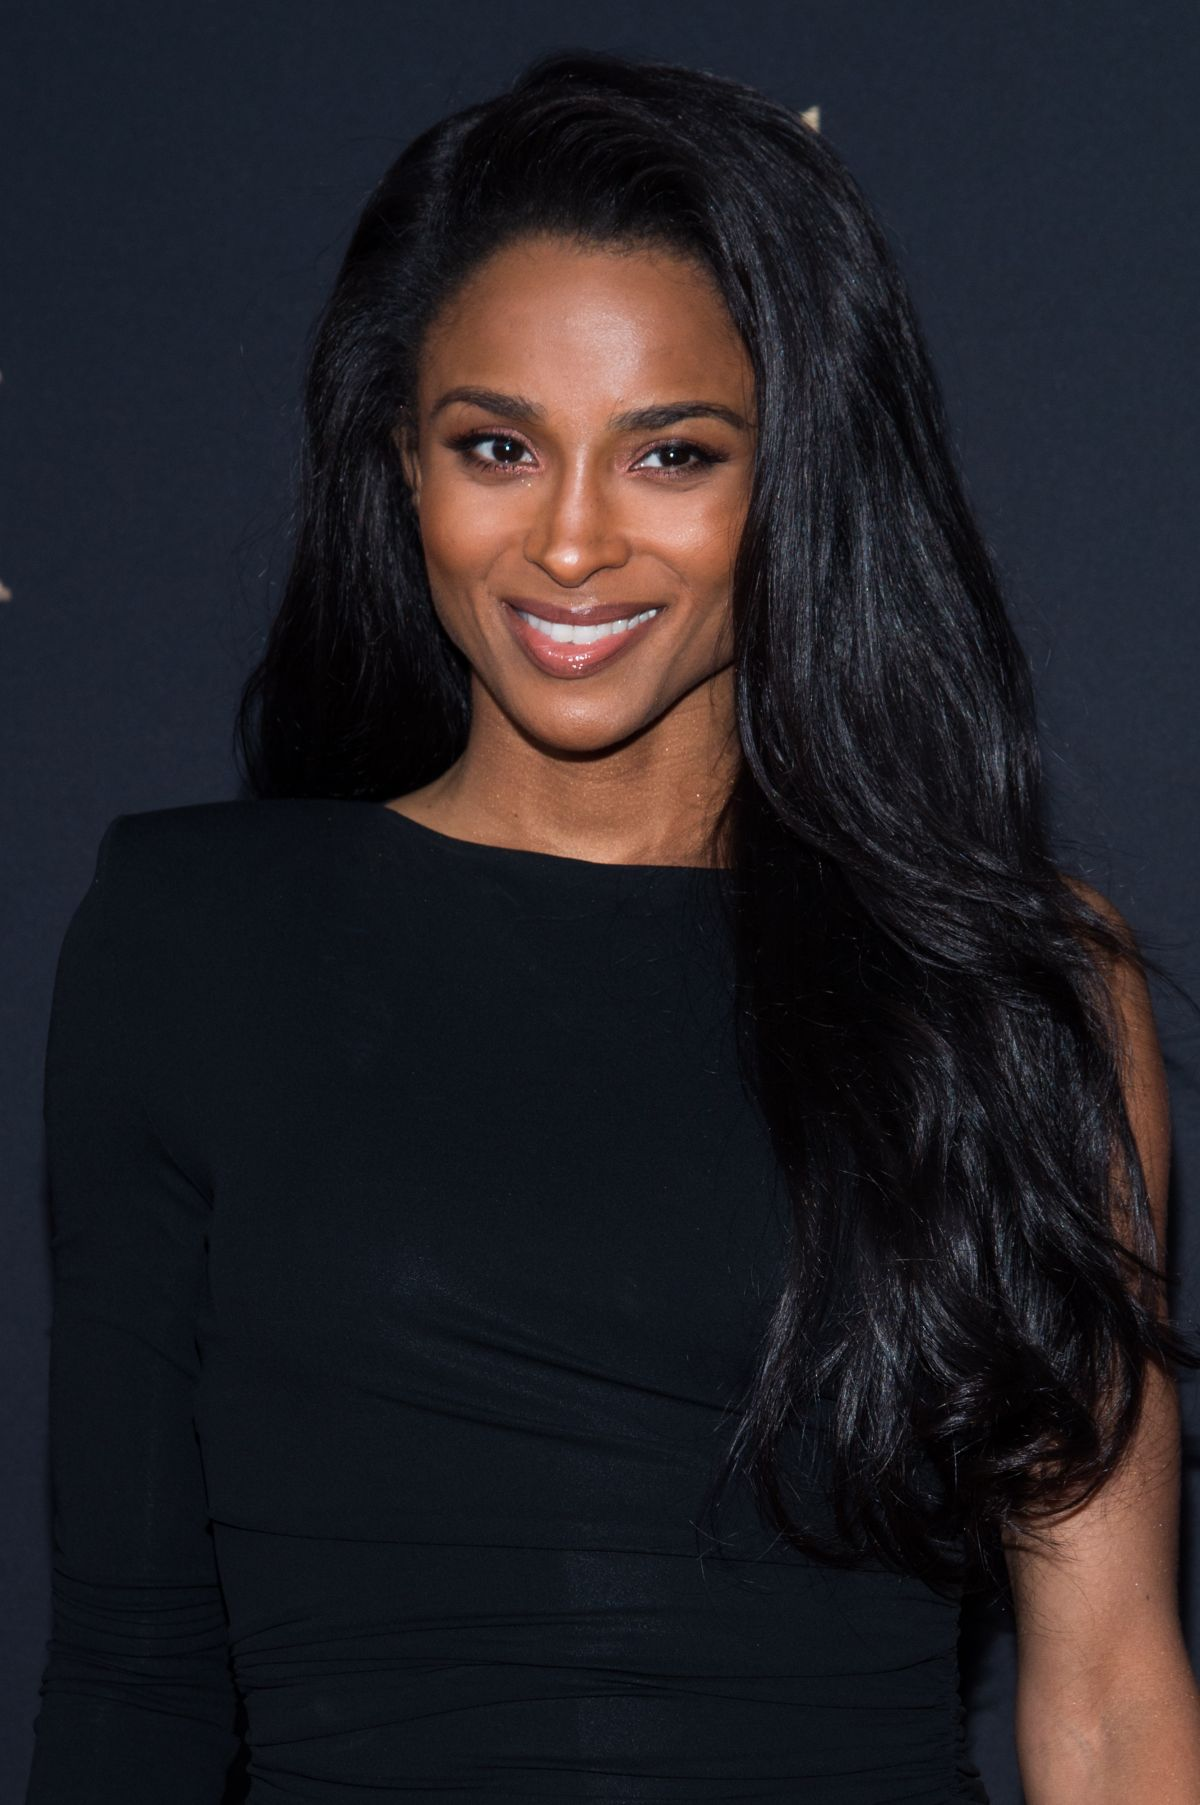 CIARA at Billboards 10th Annual Women in Music Awards in